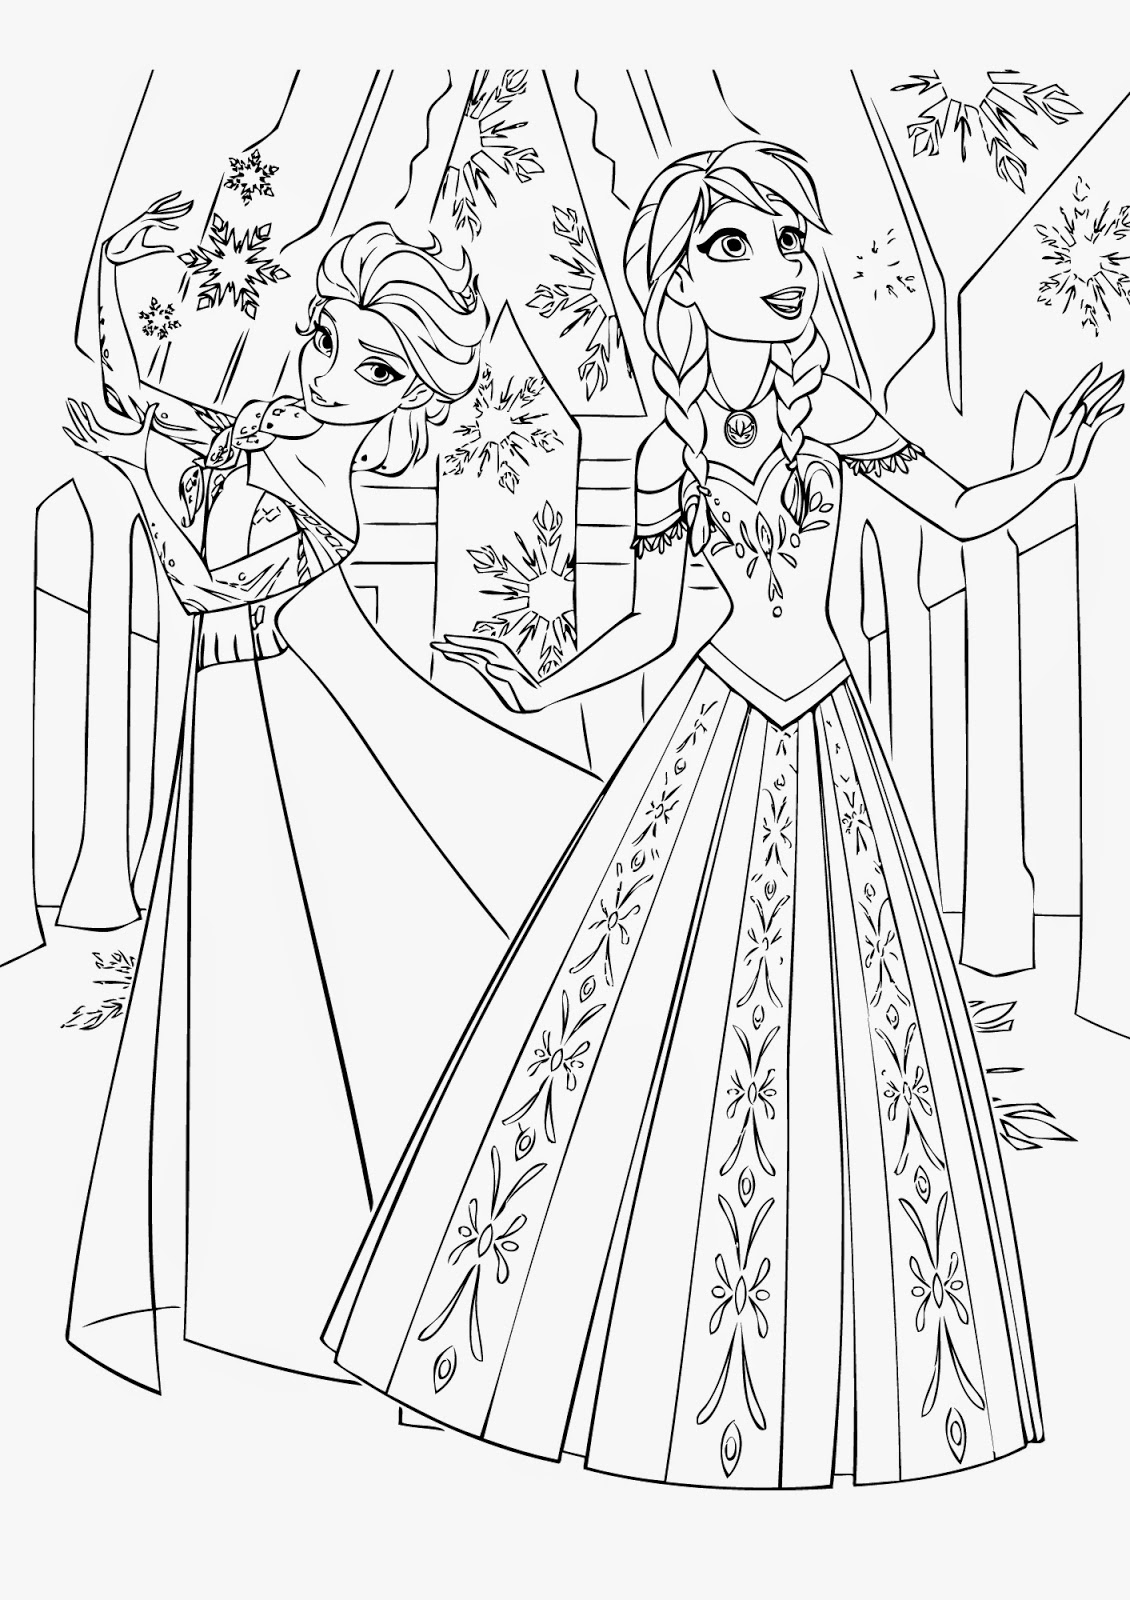 coloring sheets frozen 50 beautiful frozen coloring pages for your little princess frozen sheets coloring